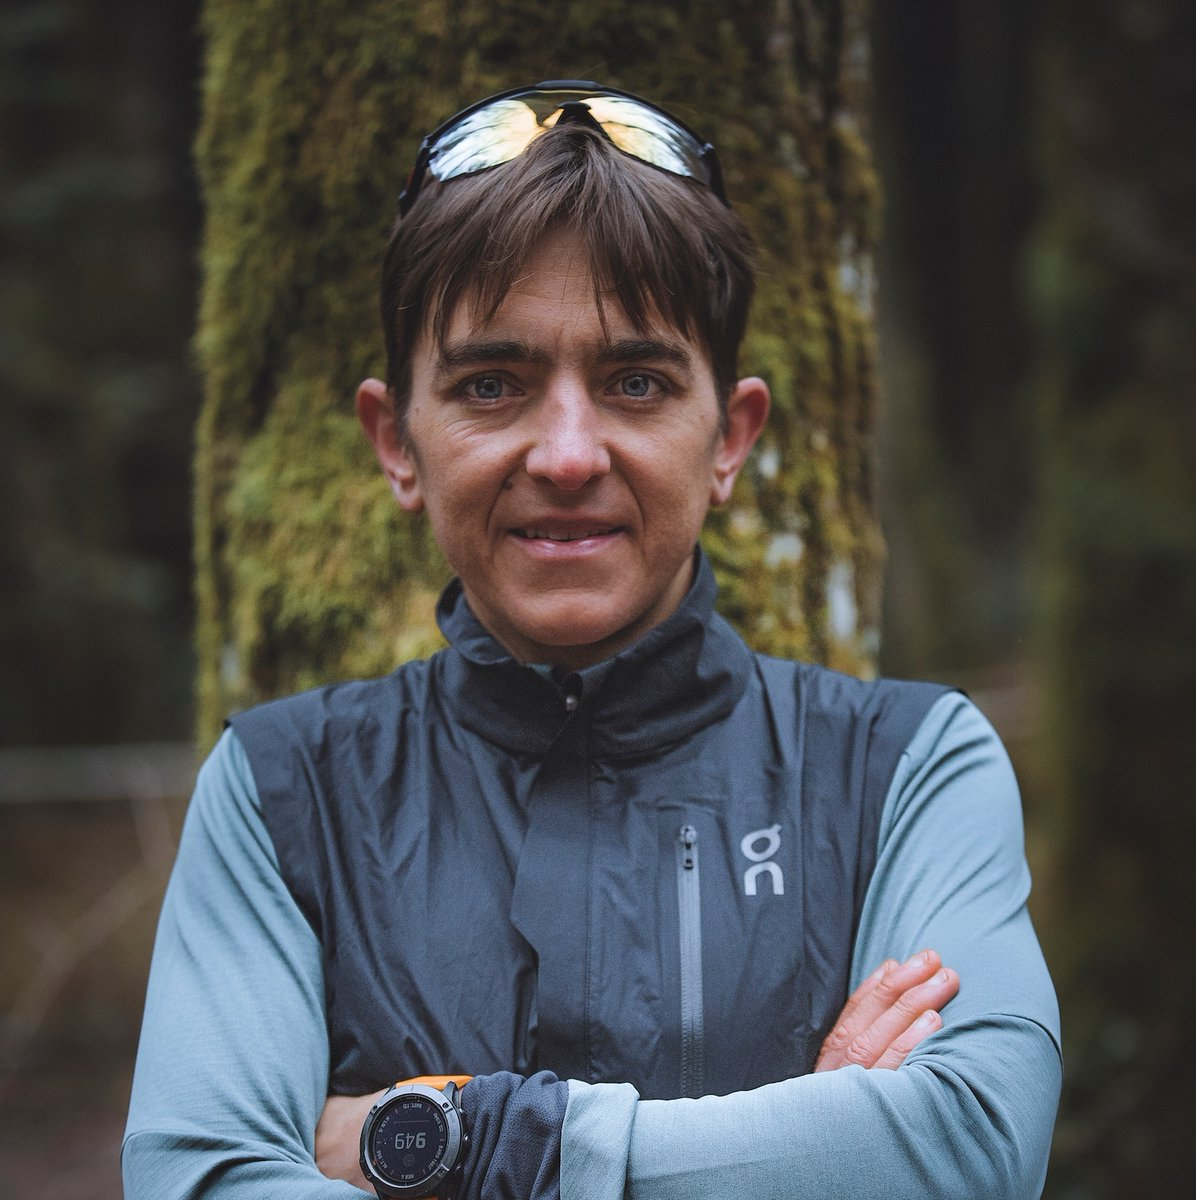 We're proud to welcome three-time UTMB champ Xavier Thévenard to Team On. With our common love for the outdoors and commitment to sustainability, we can't wait to see Xavier out on the trails as Team On. Head over to his athlete profile to learn more: https://t.co/1WaclnDo0M https://t.co/eBTMjlZqVF